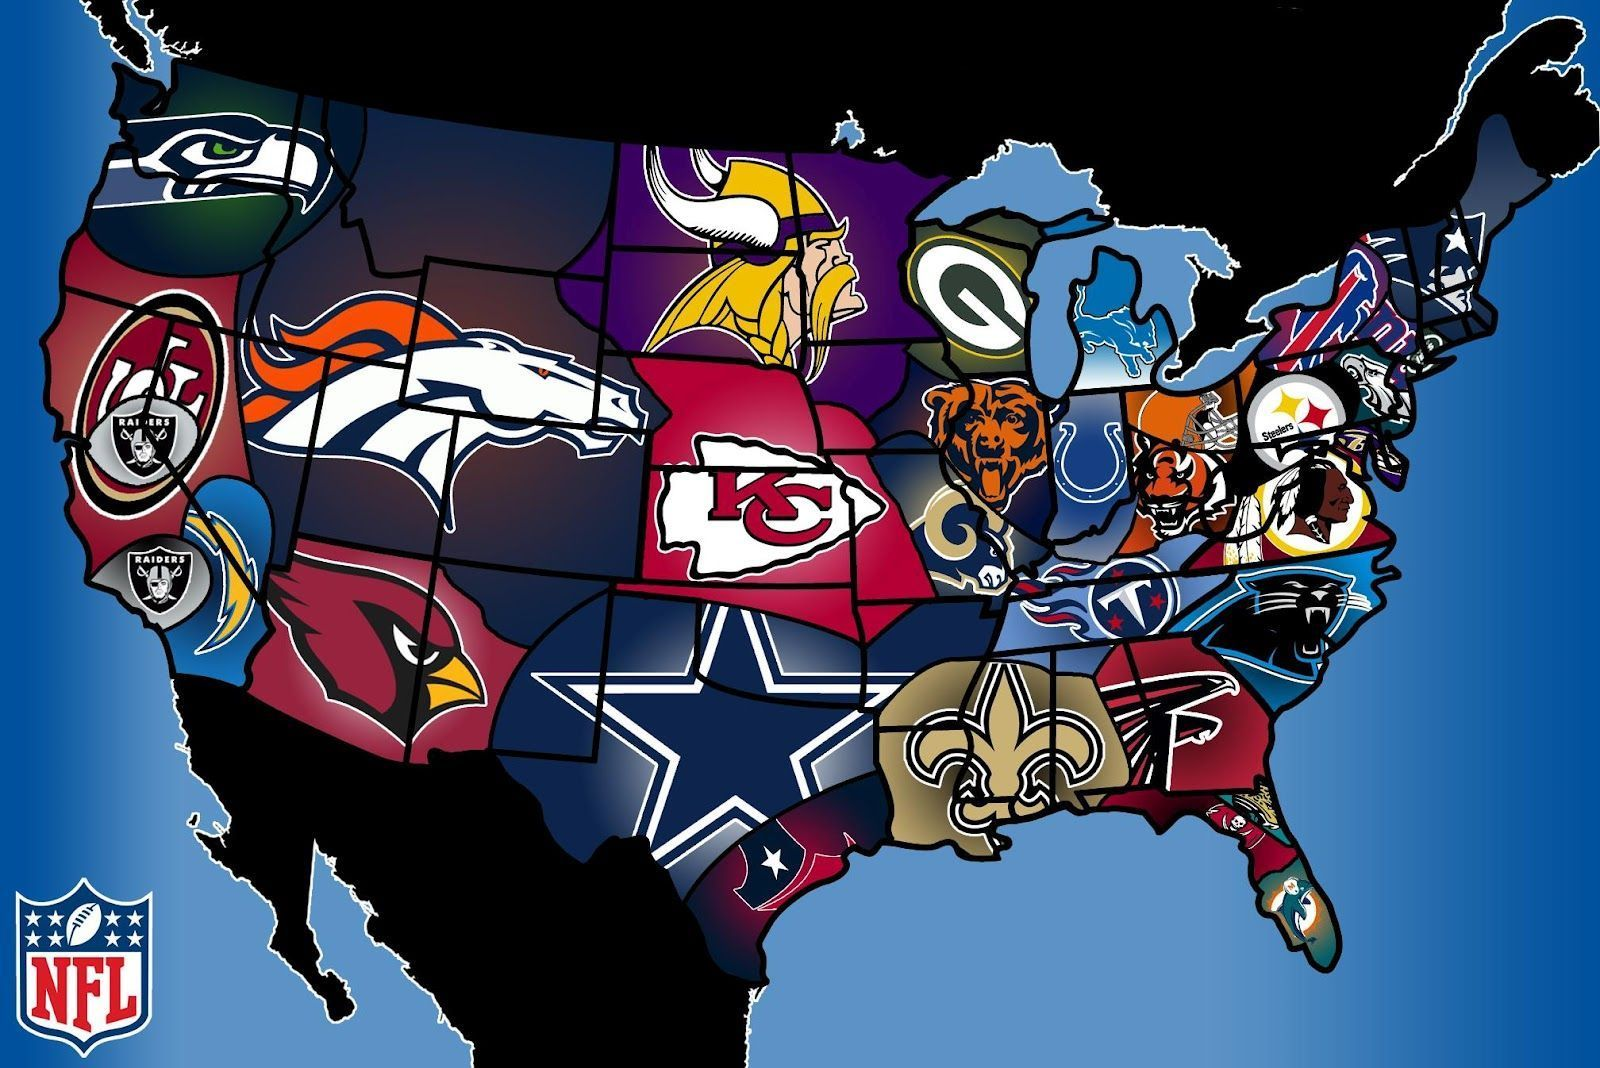 NFL Wallpapers For Desktop   52DazheW Gallery 1600x1068